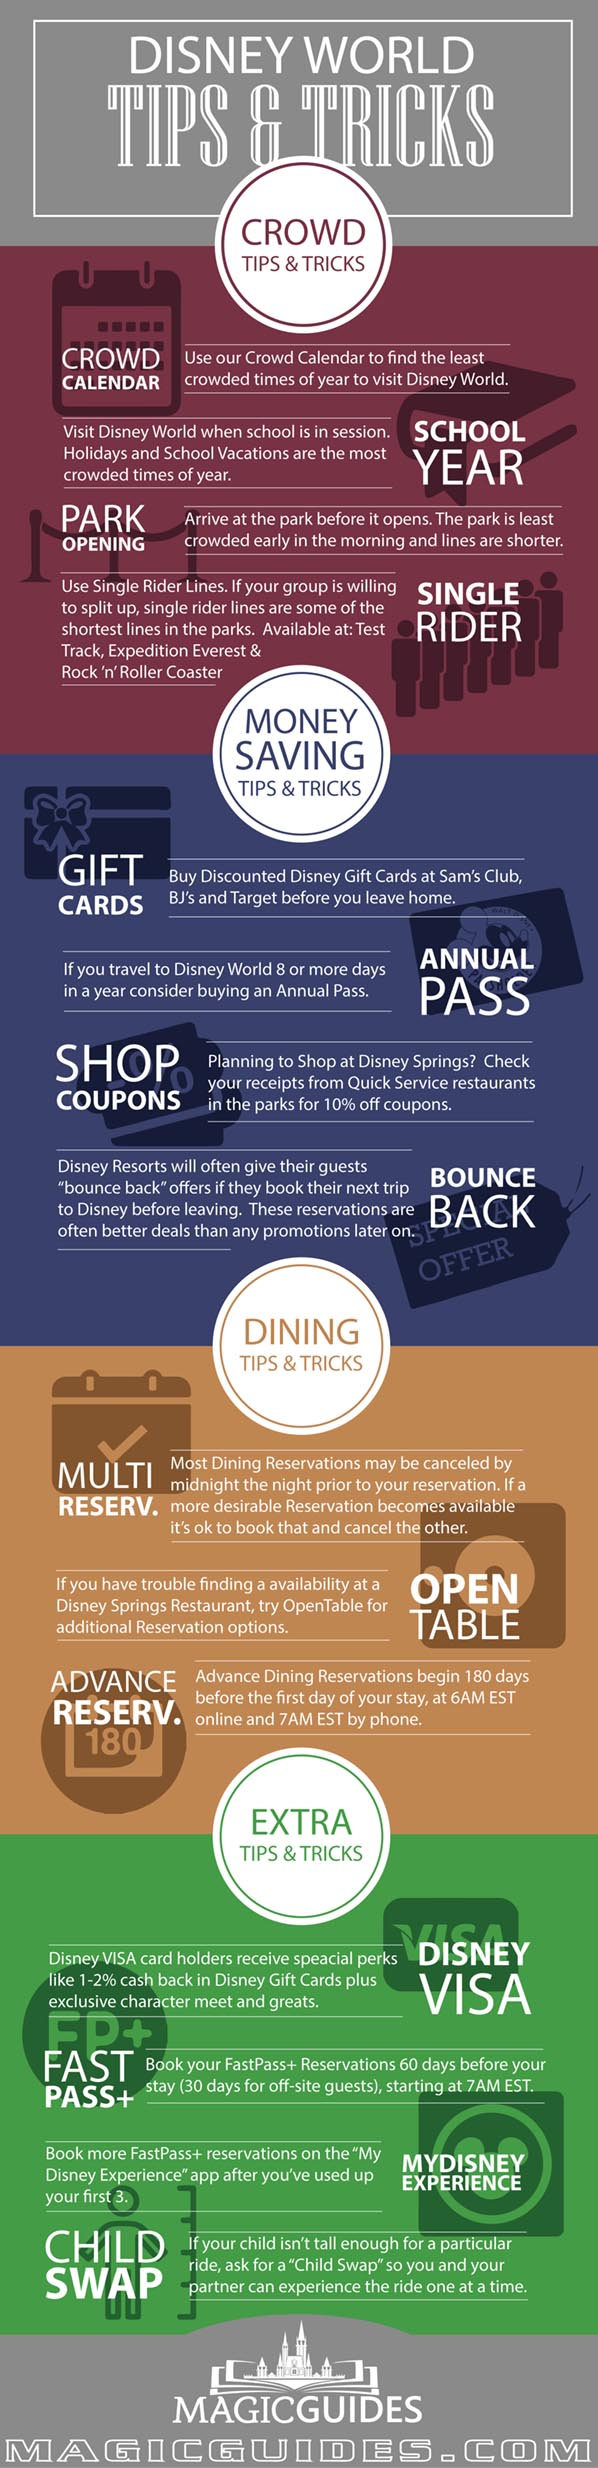 best disney world tips and tricks